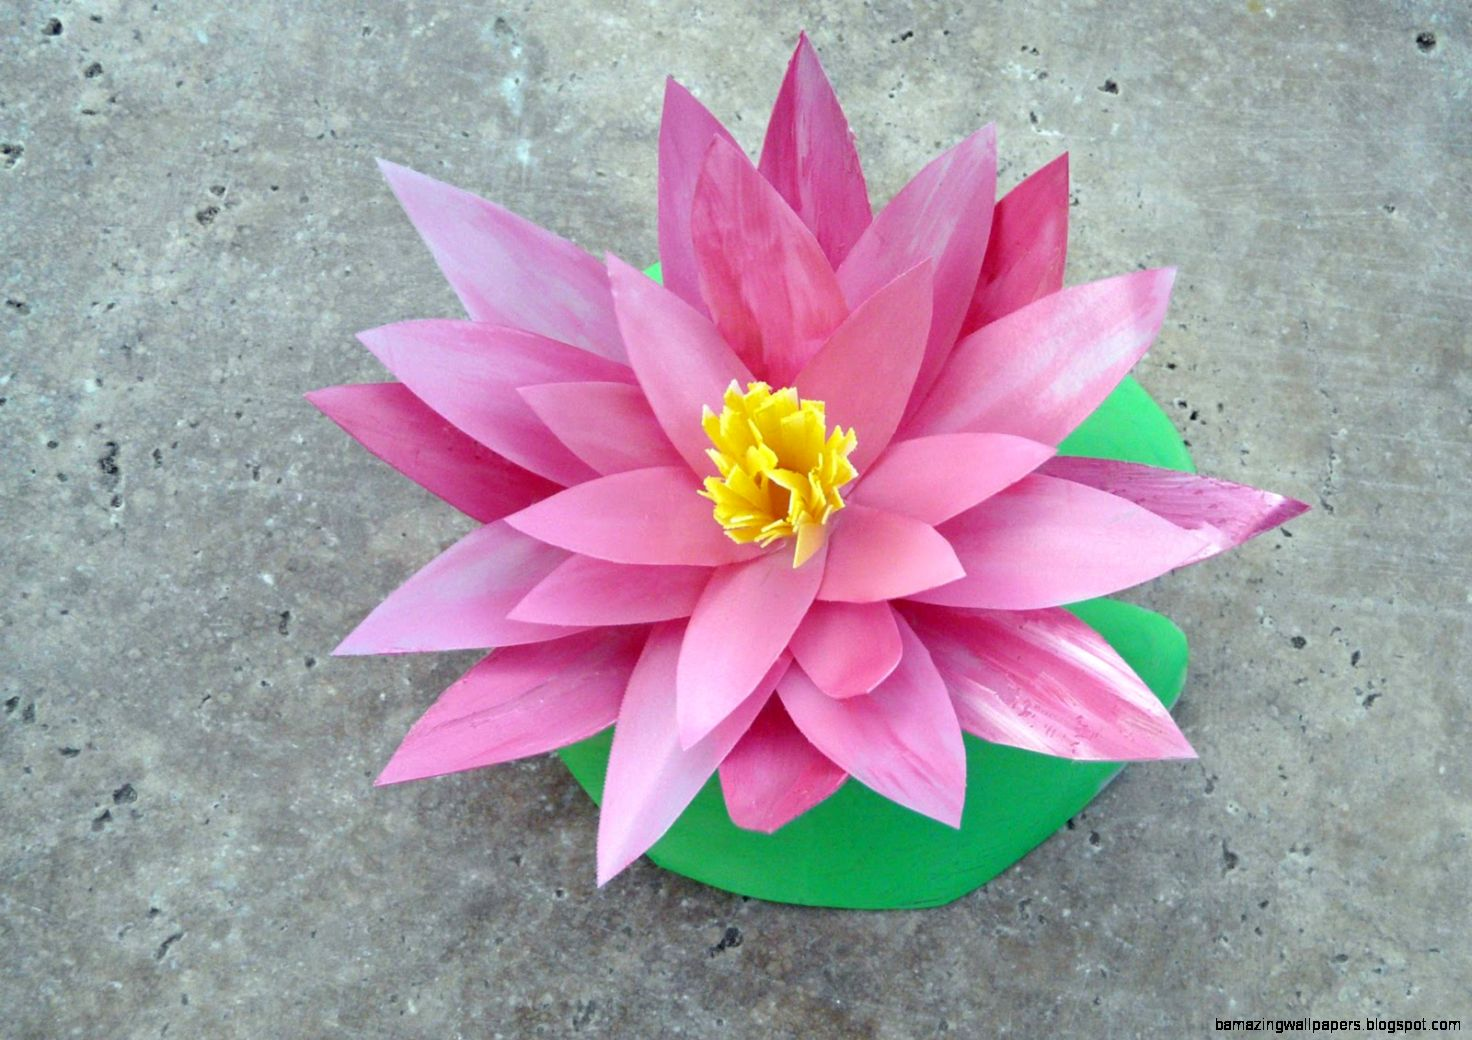 Lily Pad Flower Painting Amazing Wallpapers